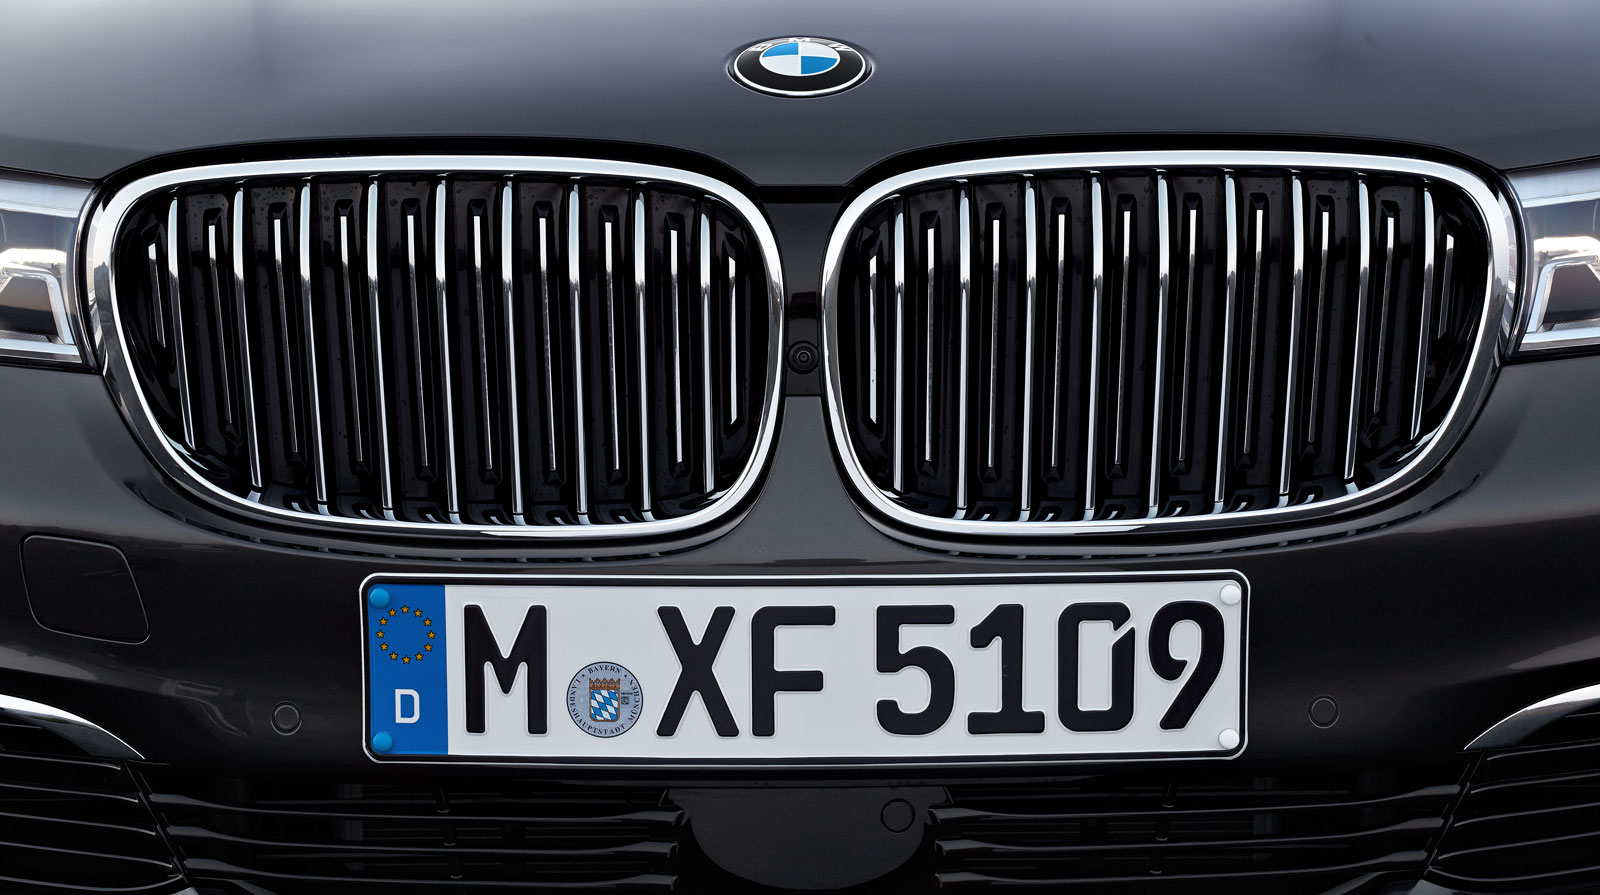 BMW Electric Car >> BMW 7 Series - Kidney Grille with Active Shutters - Car Body Design